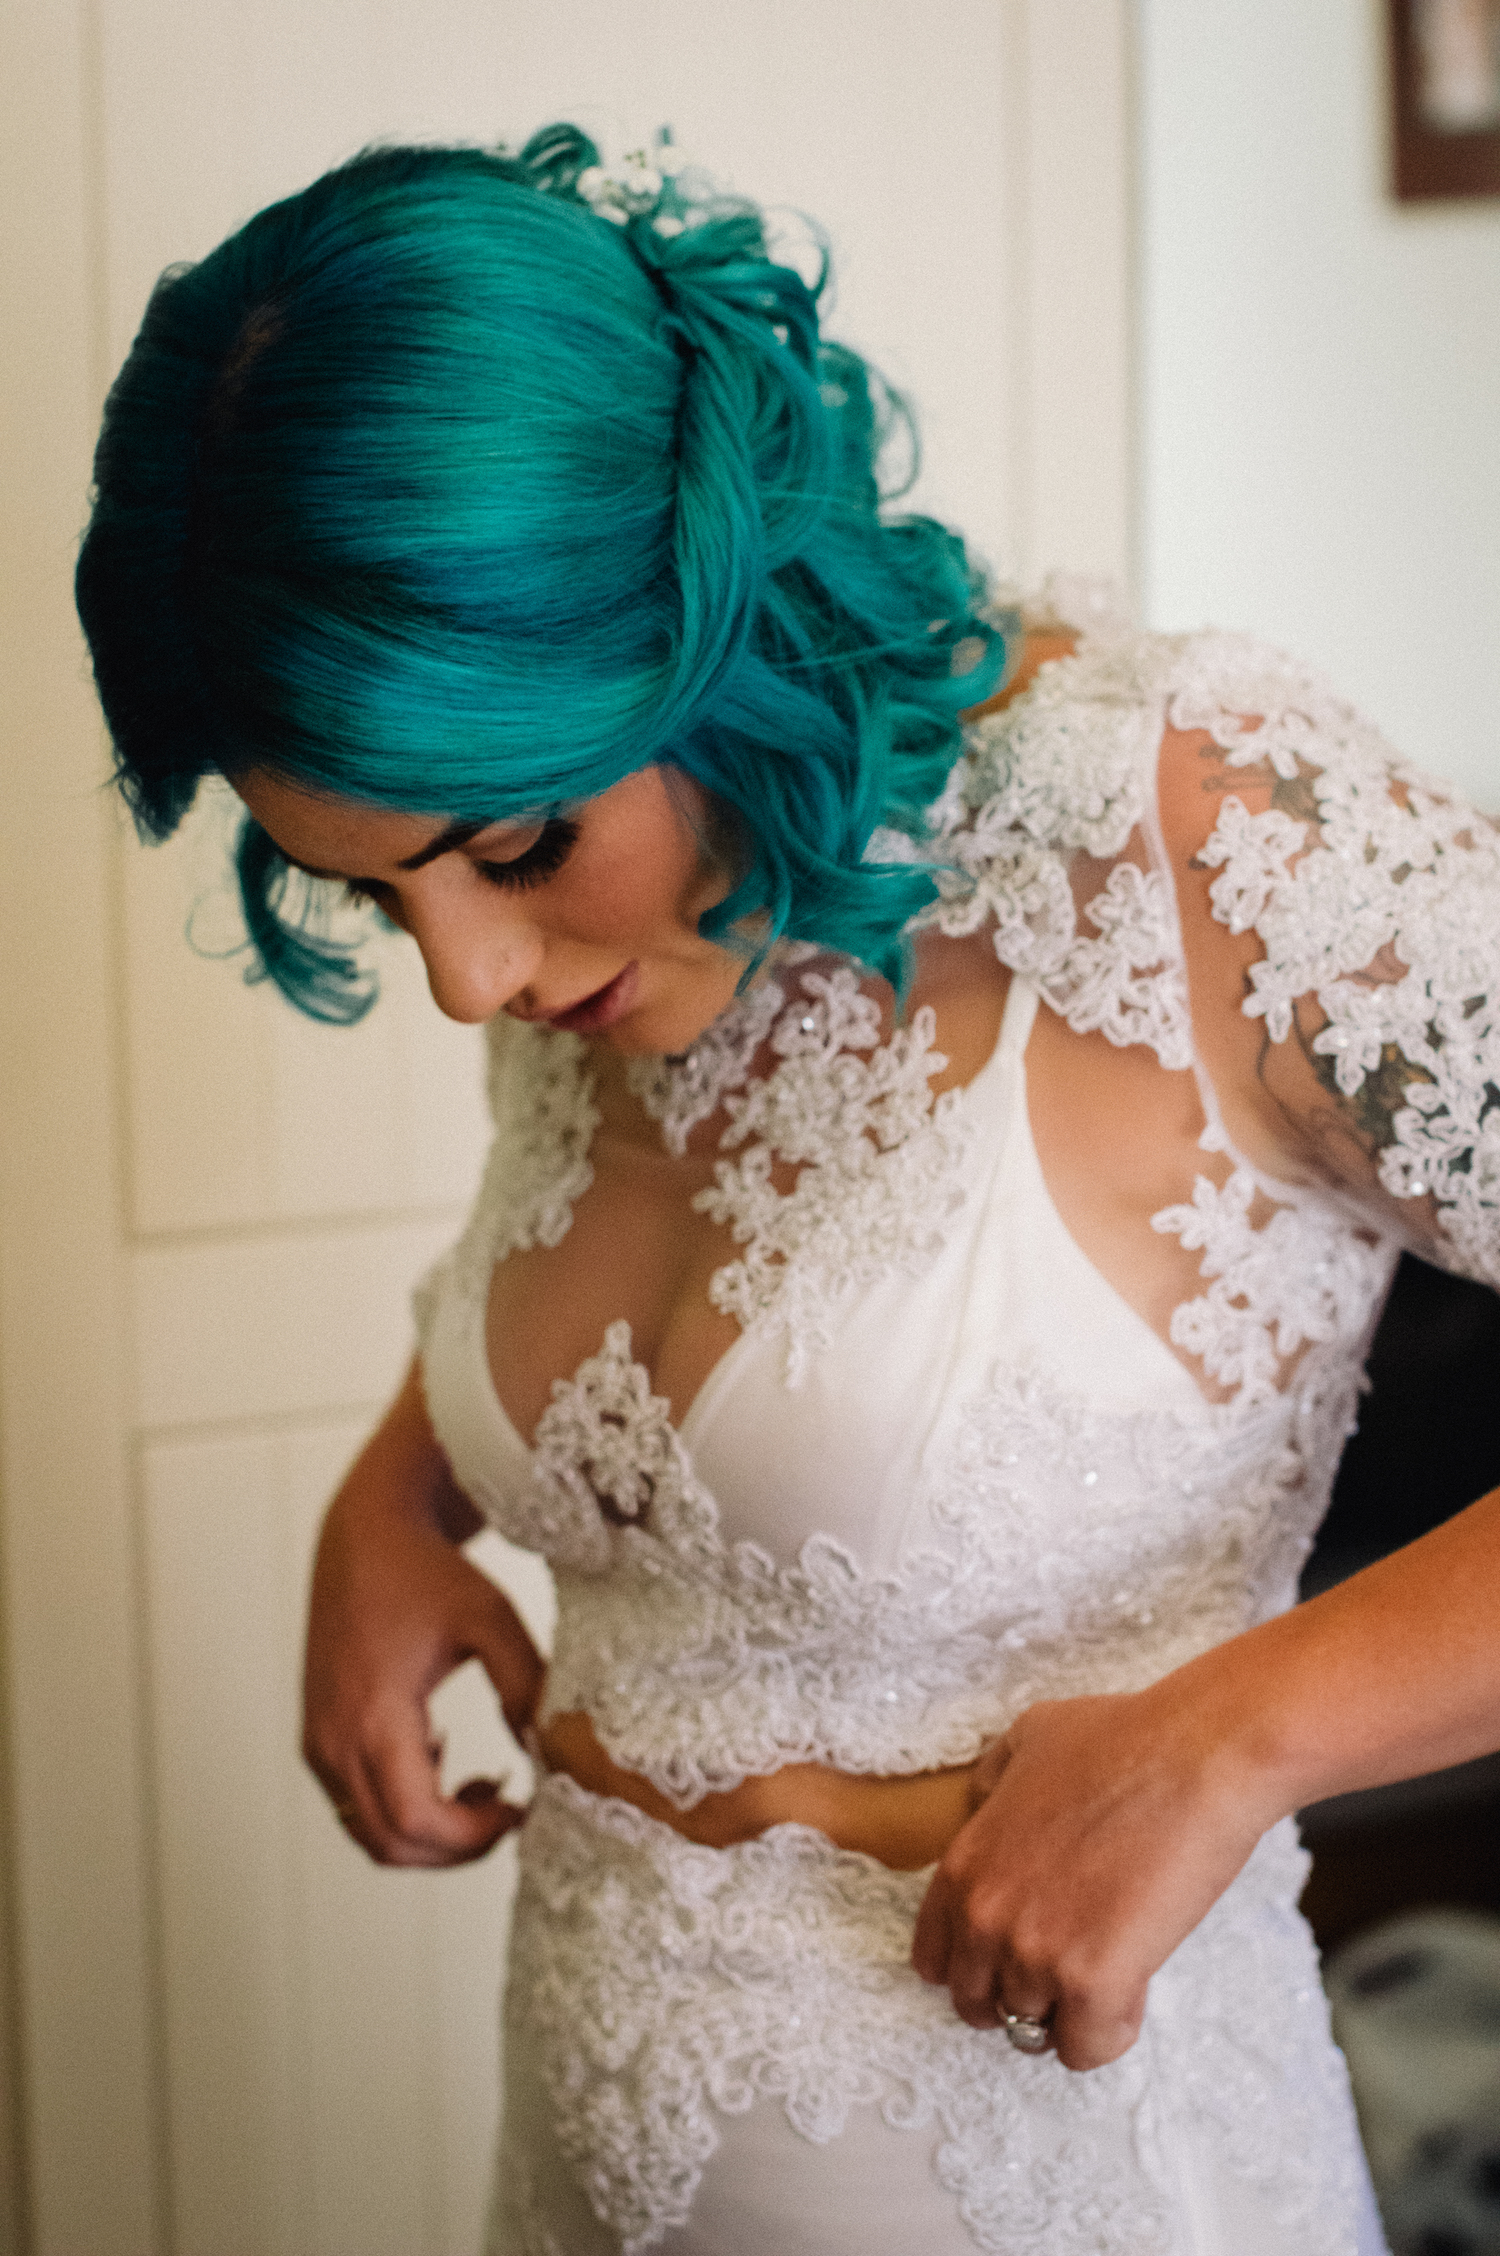 Perth Wedding Photography Aimee Rory Bridal Portrait